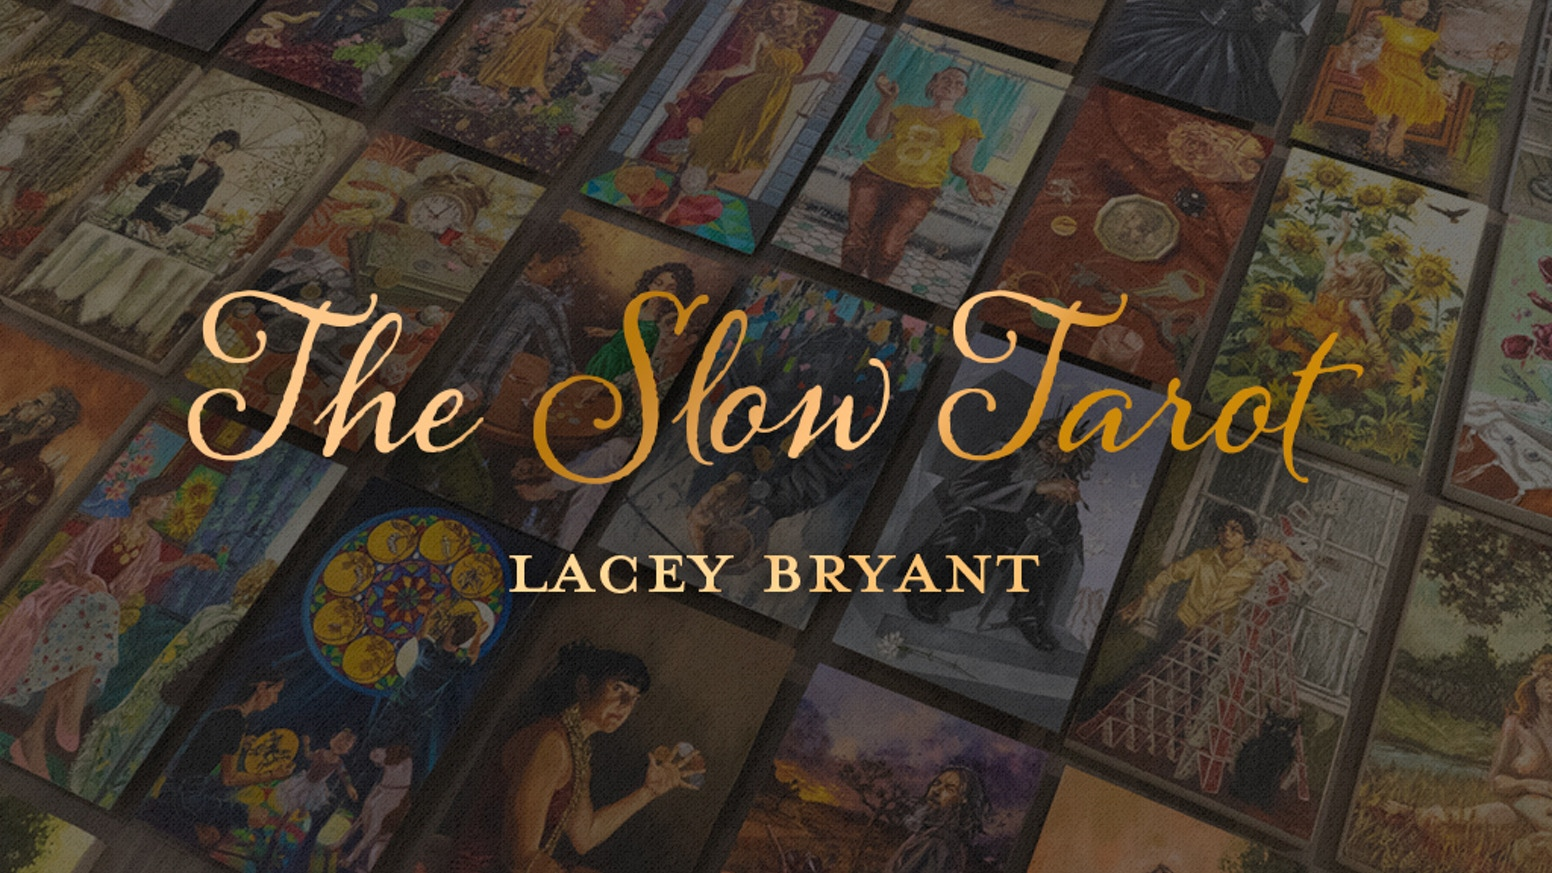 An 80 card tarot deck featuring original oil paintings by artist Lacey Bryant.